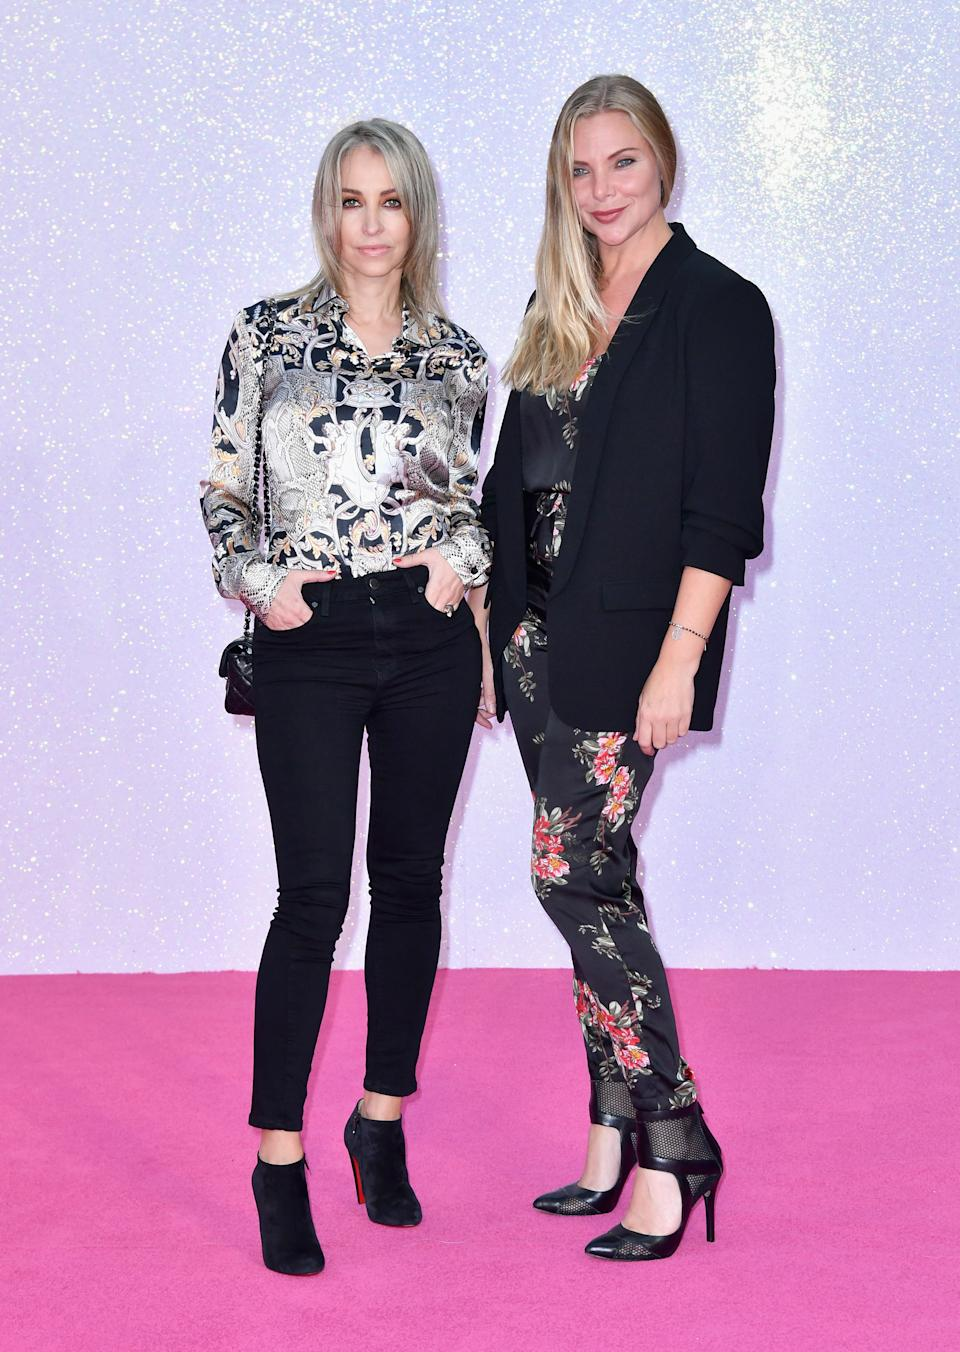 Natalie Appleton and Samantha Womack had their suspicions that Denise van Outen was Fox. (Photo by Gareth Cattermole/Getty Images)